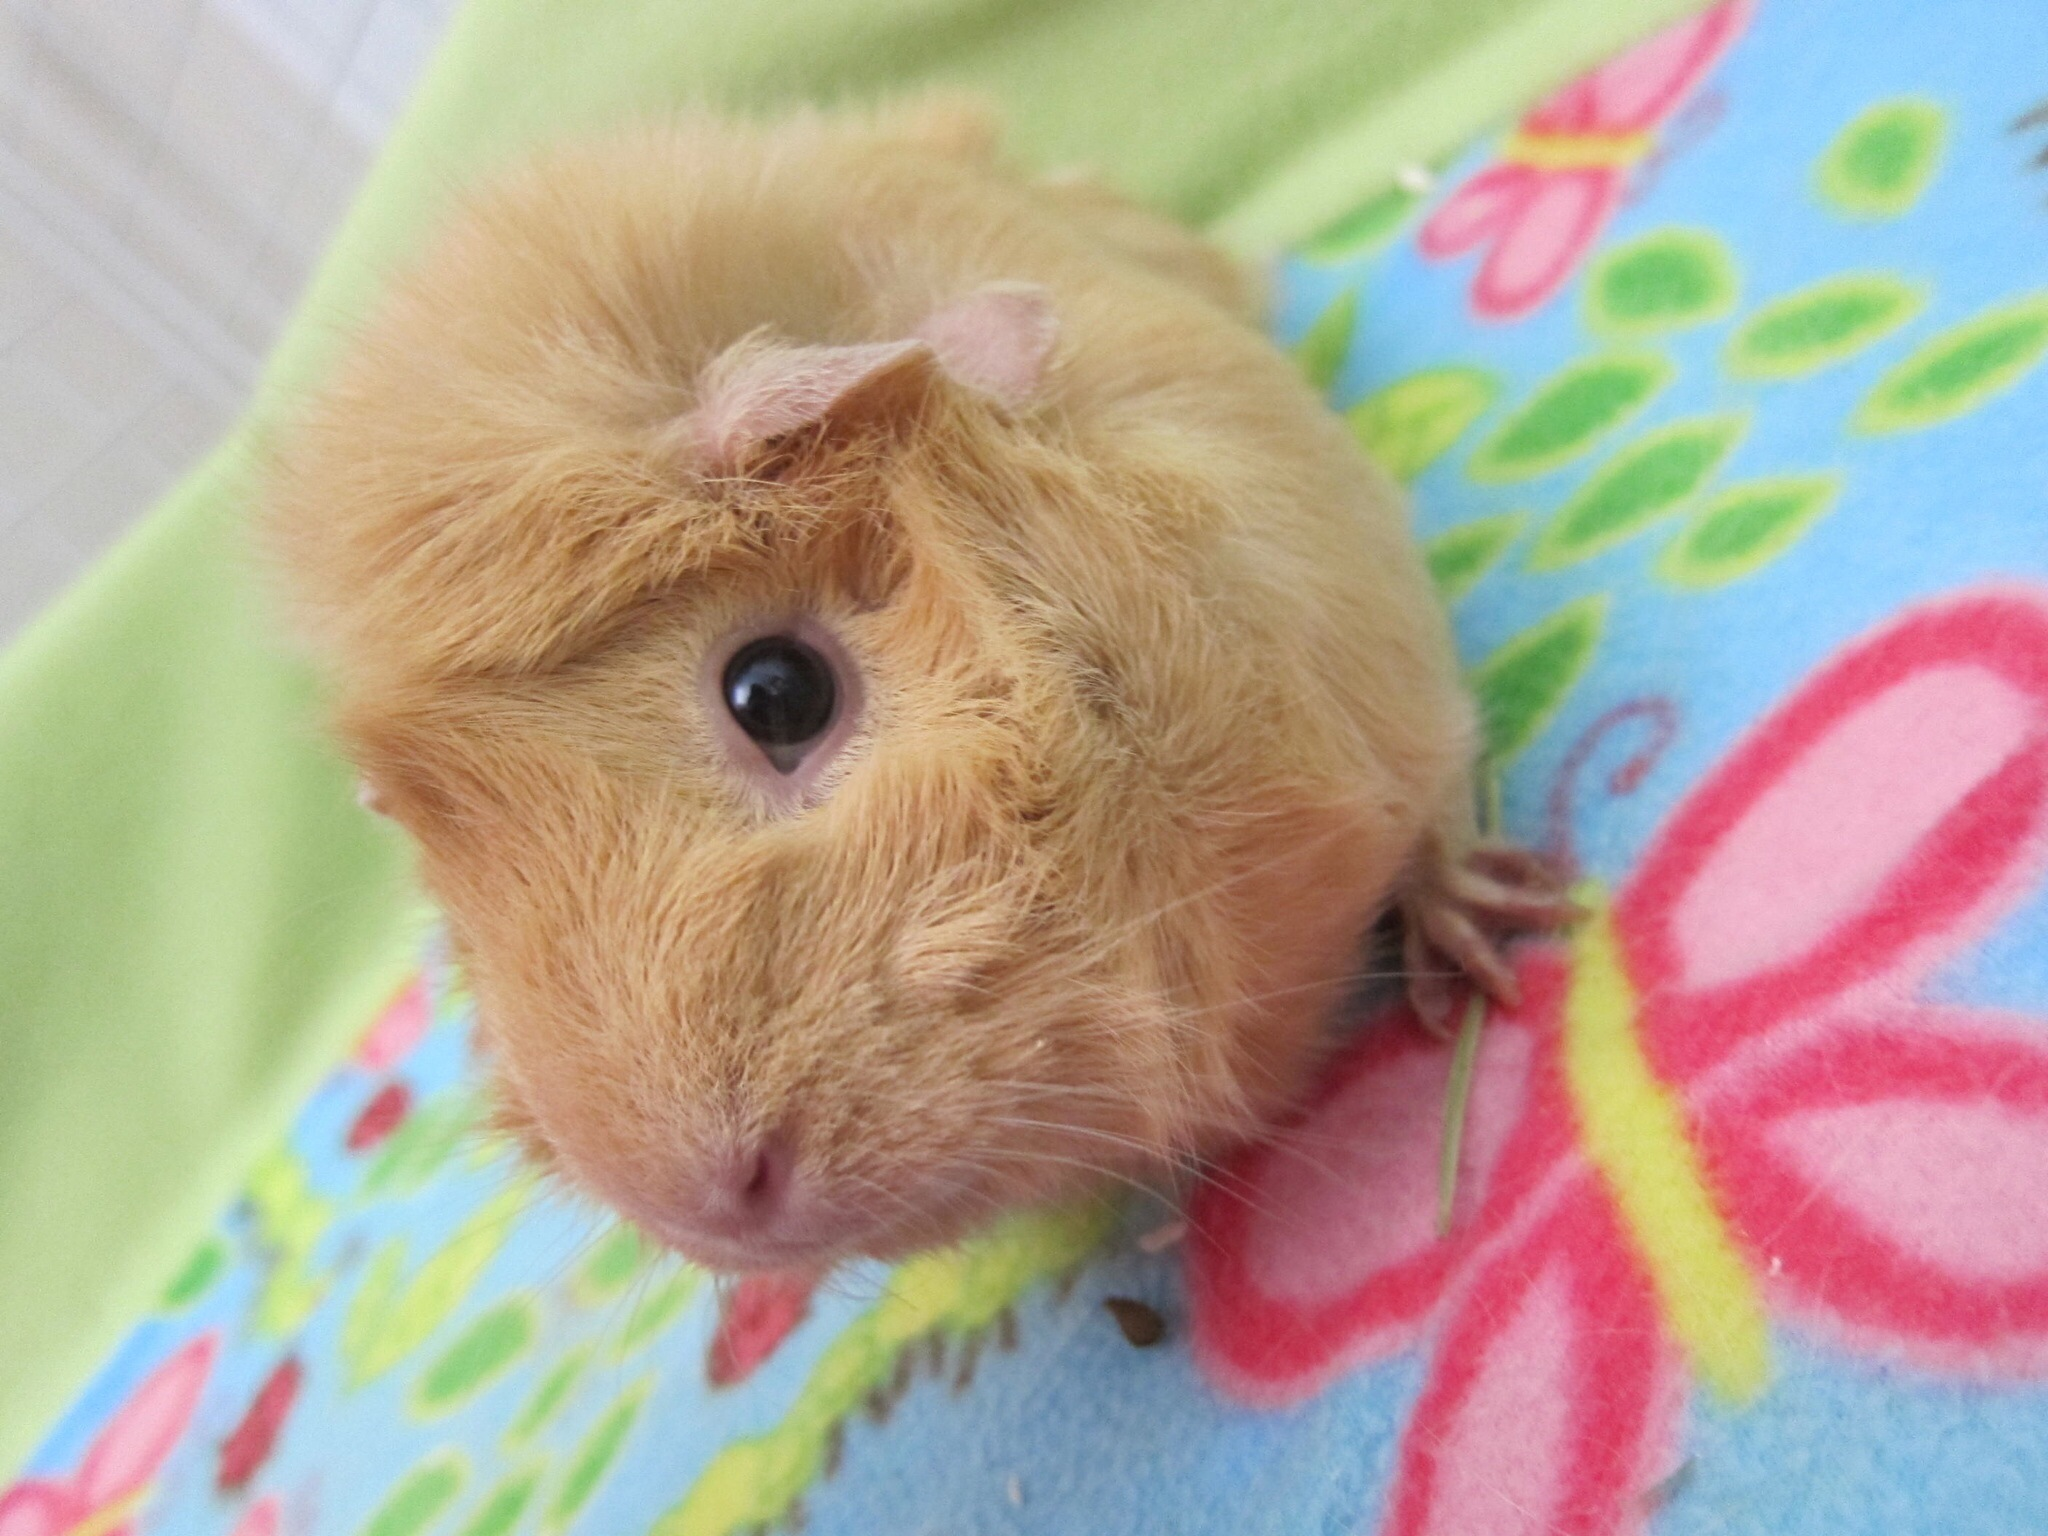 Photograph of a beige guinea pig on floral bedding